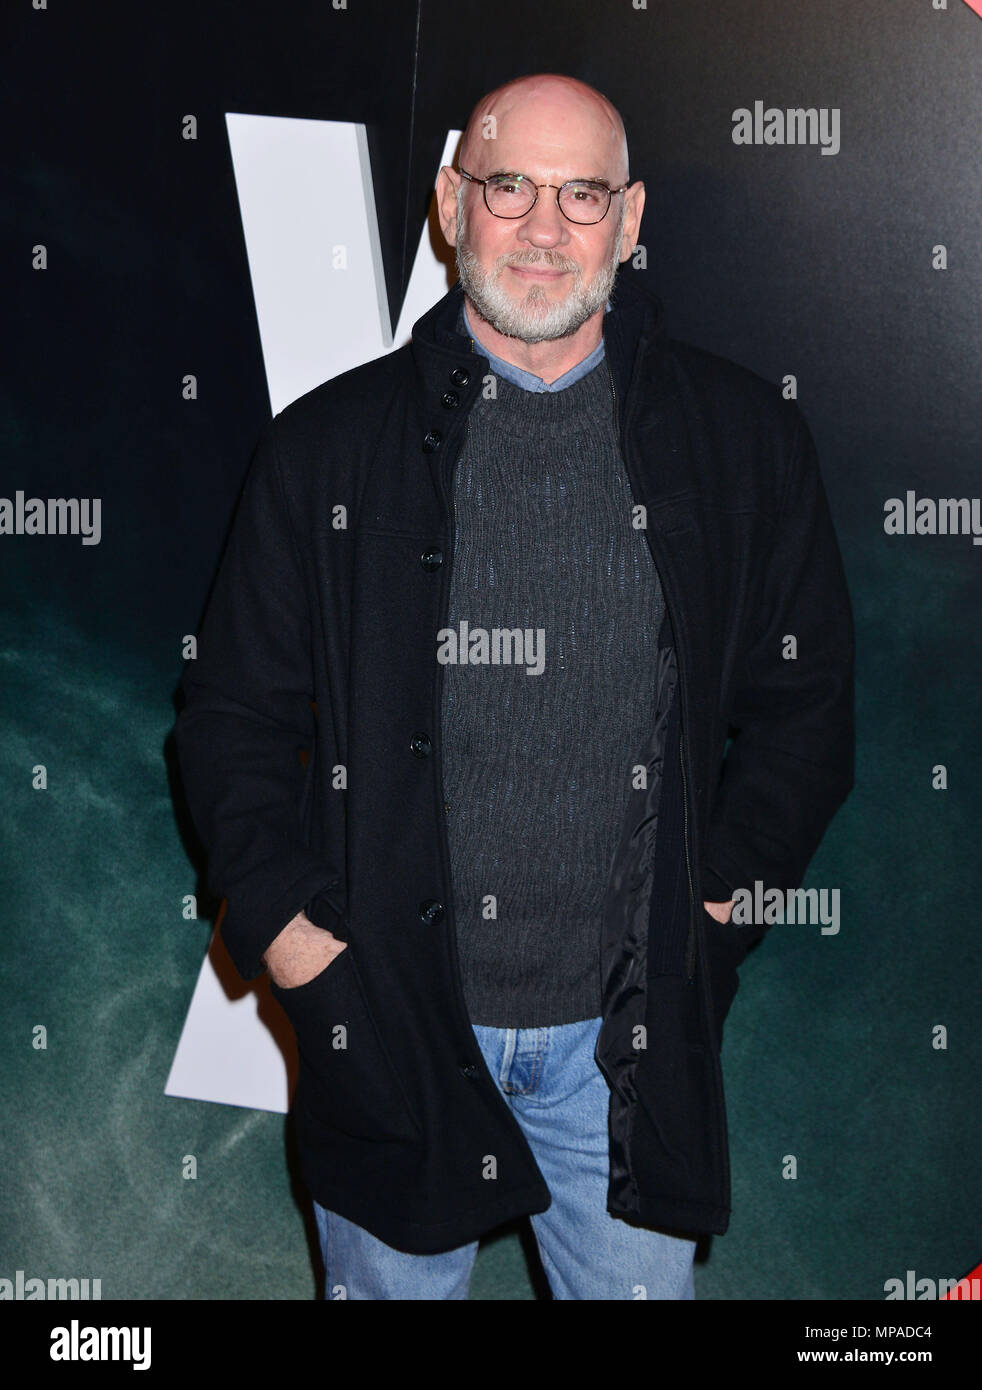 Mitch Pileggi 049  at The X-Files Premiere at California Science Center in Los Angeles, CA  January 12, 2016.Mitch Pileggi 049 ------------- Red Carpet Event, Vertical, USA, Film Industry, Celebrities,  Photography, Bestof, Arts Culture and Entertainment, Topix Celebrities fashion /  Vertical, Best of, Event in Hollywood Life - California,  Red Carpet and backstage, USA, Film Industry, Celebrities,  movie celebrities, TV celebrities, Music celebrities, Photography, Bestof, Arts Culture and Entertainment,  Topix, Three Quarters, vertical, one person,, from the year , 2016, inquiry tsuni@Gamma-U - Stock Image